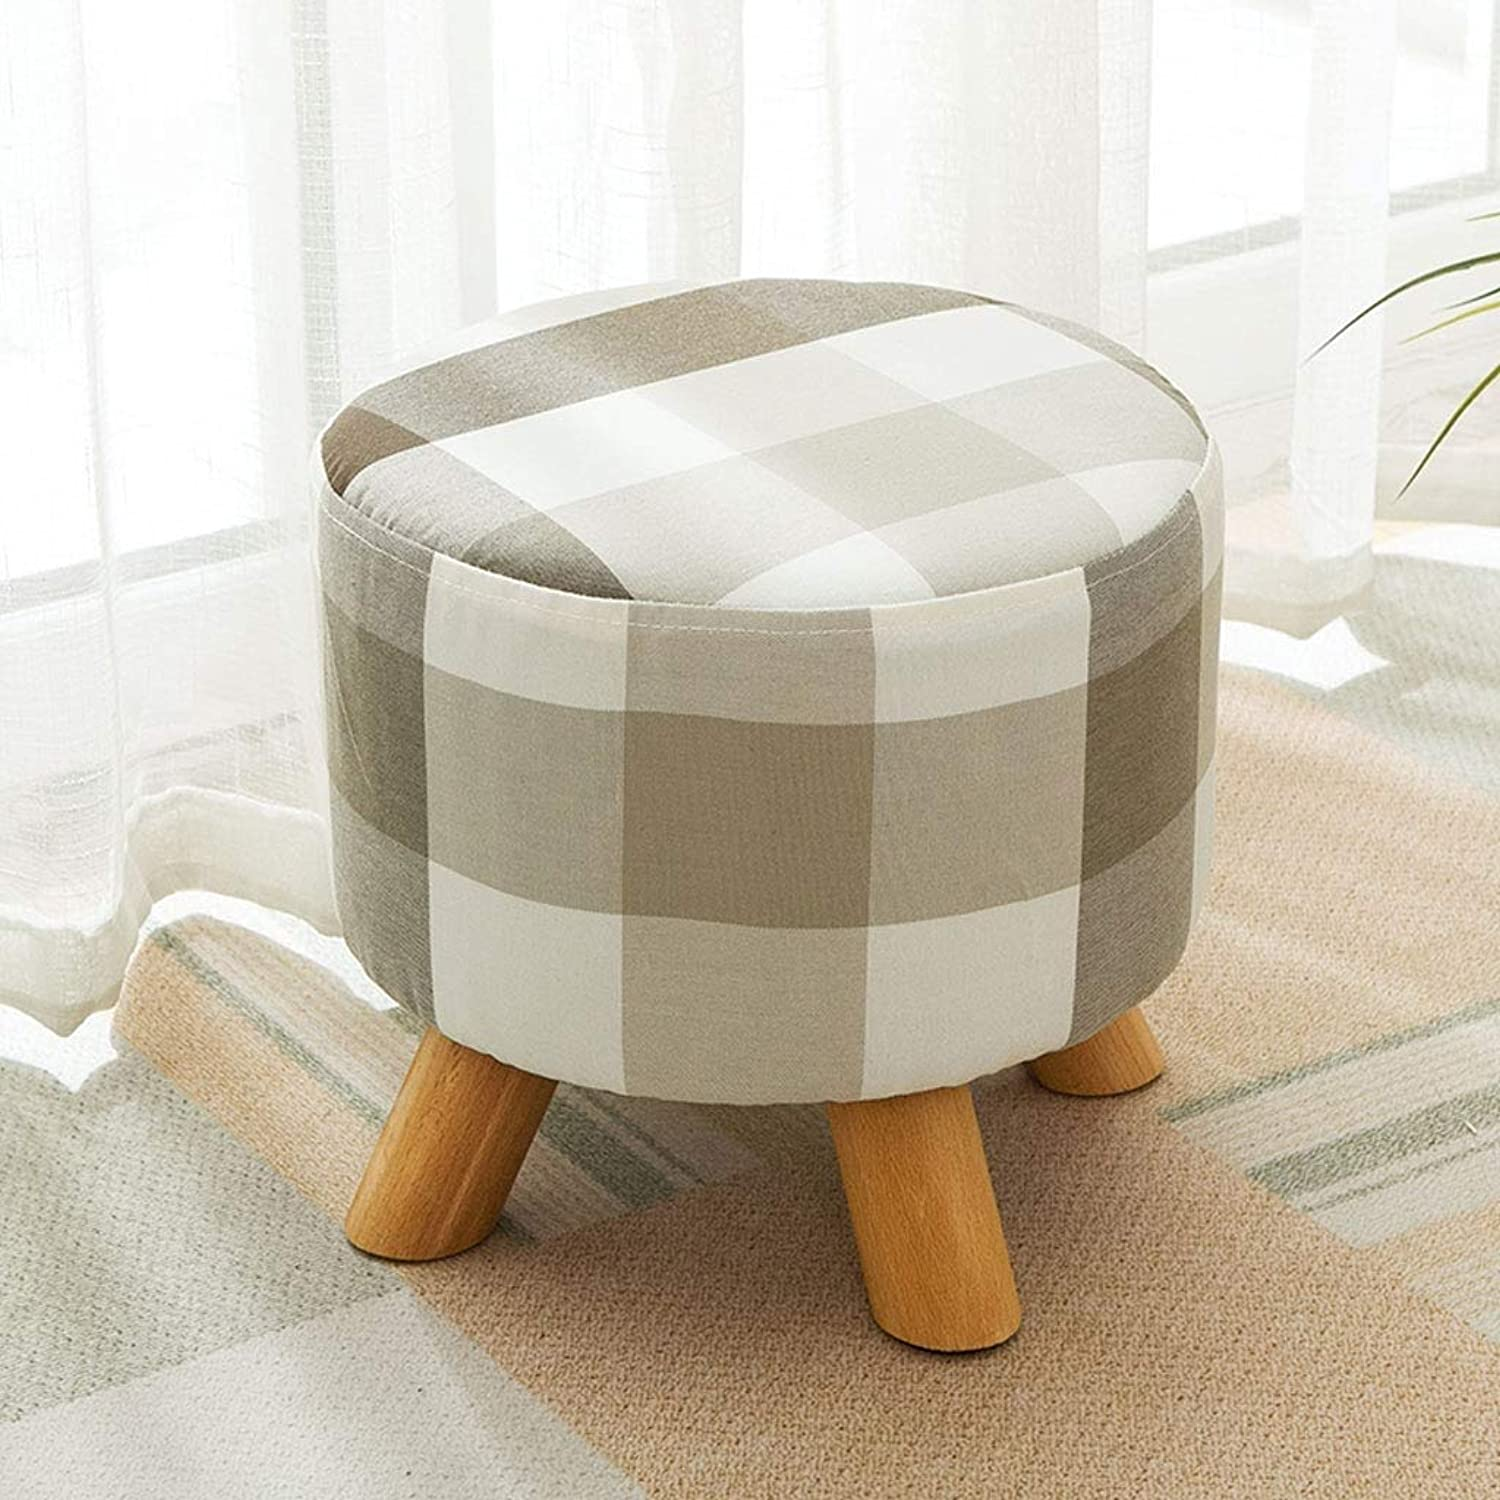 Change shoes Bench Small Stool Cloth Solid Wood Living Room Sofa Stool JINRONG (color   C)